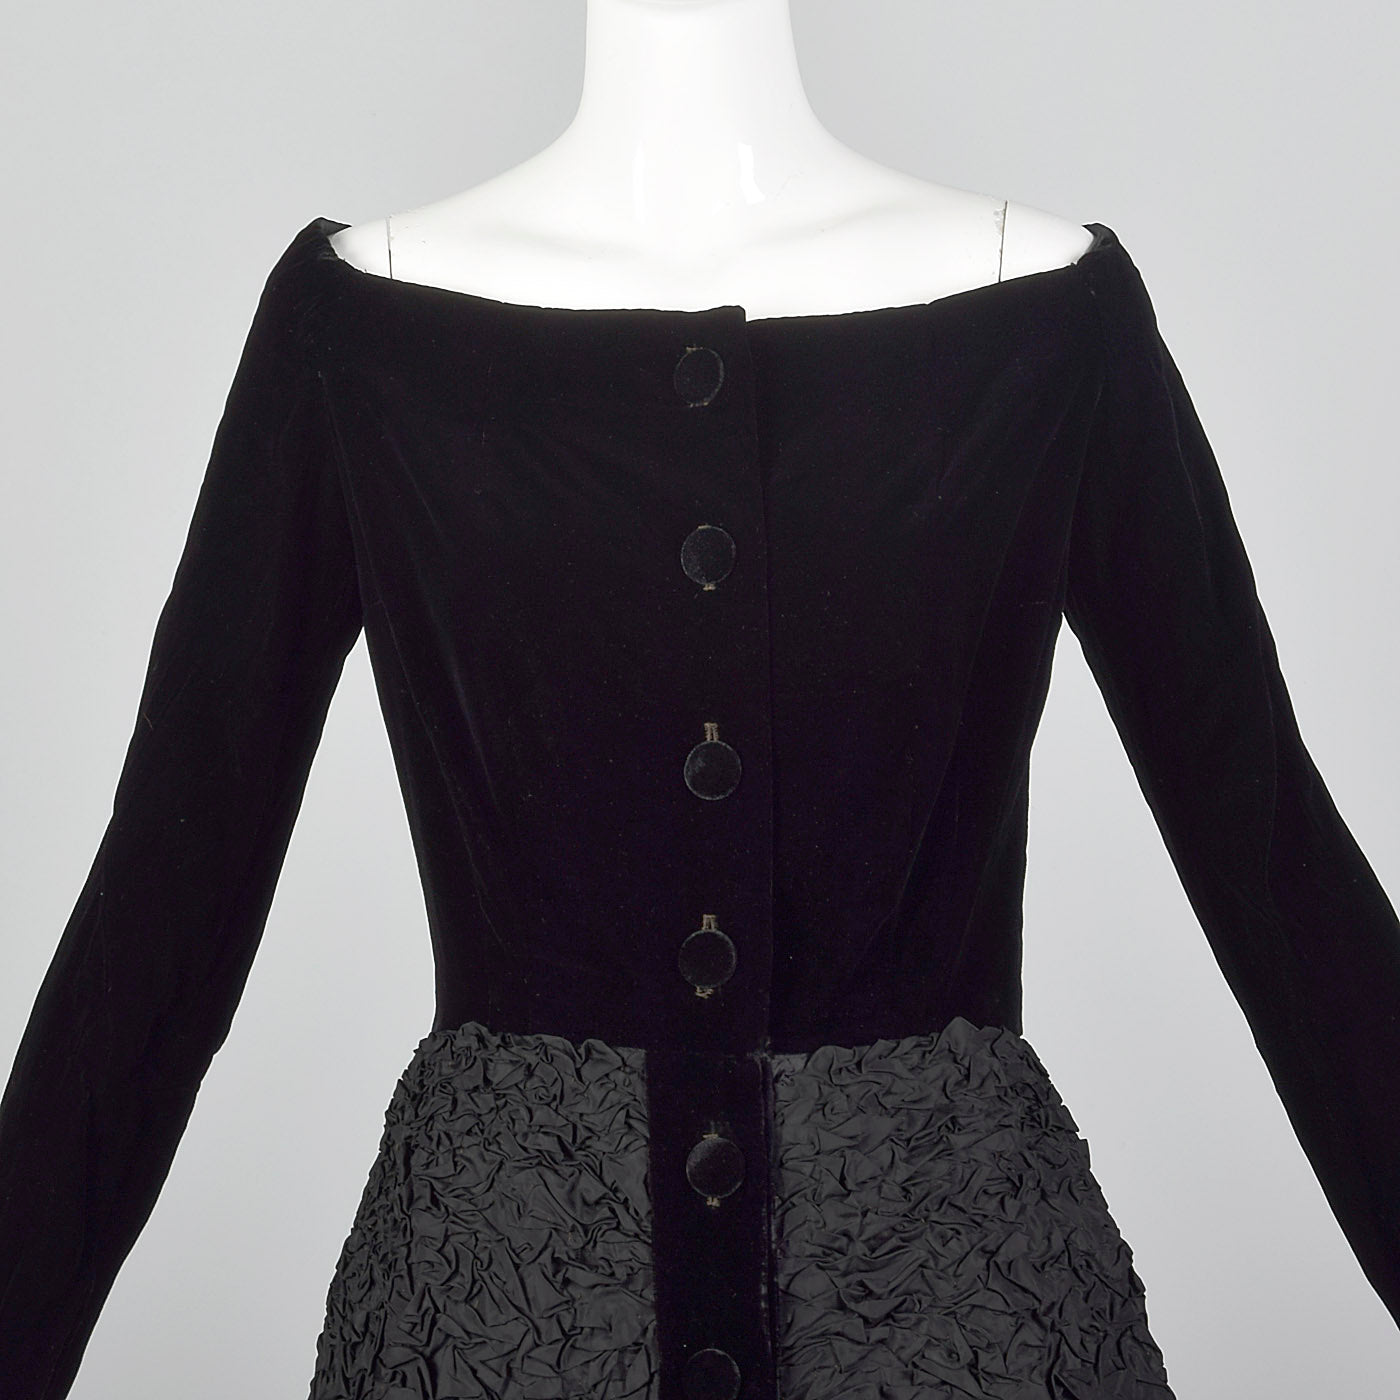 1950s Black Velvet Dress with Textured Skirt